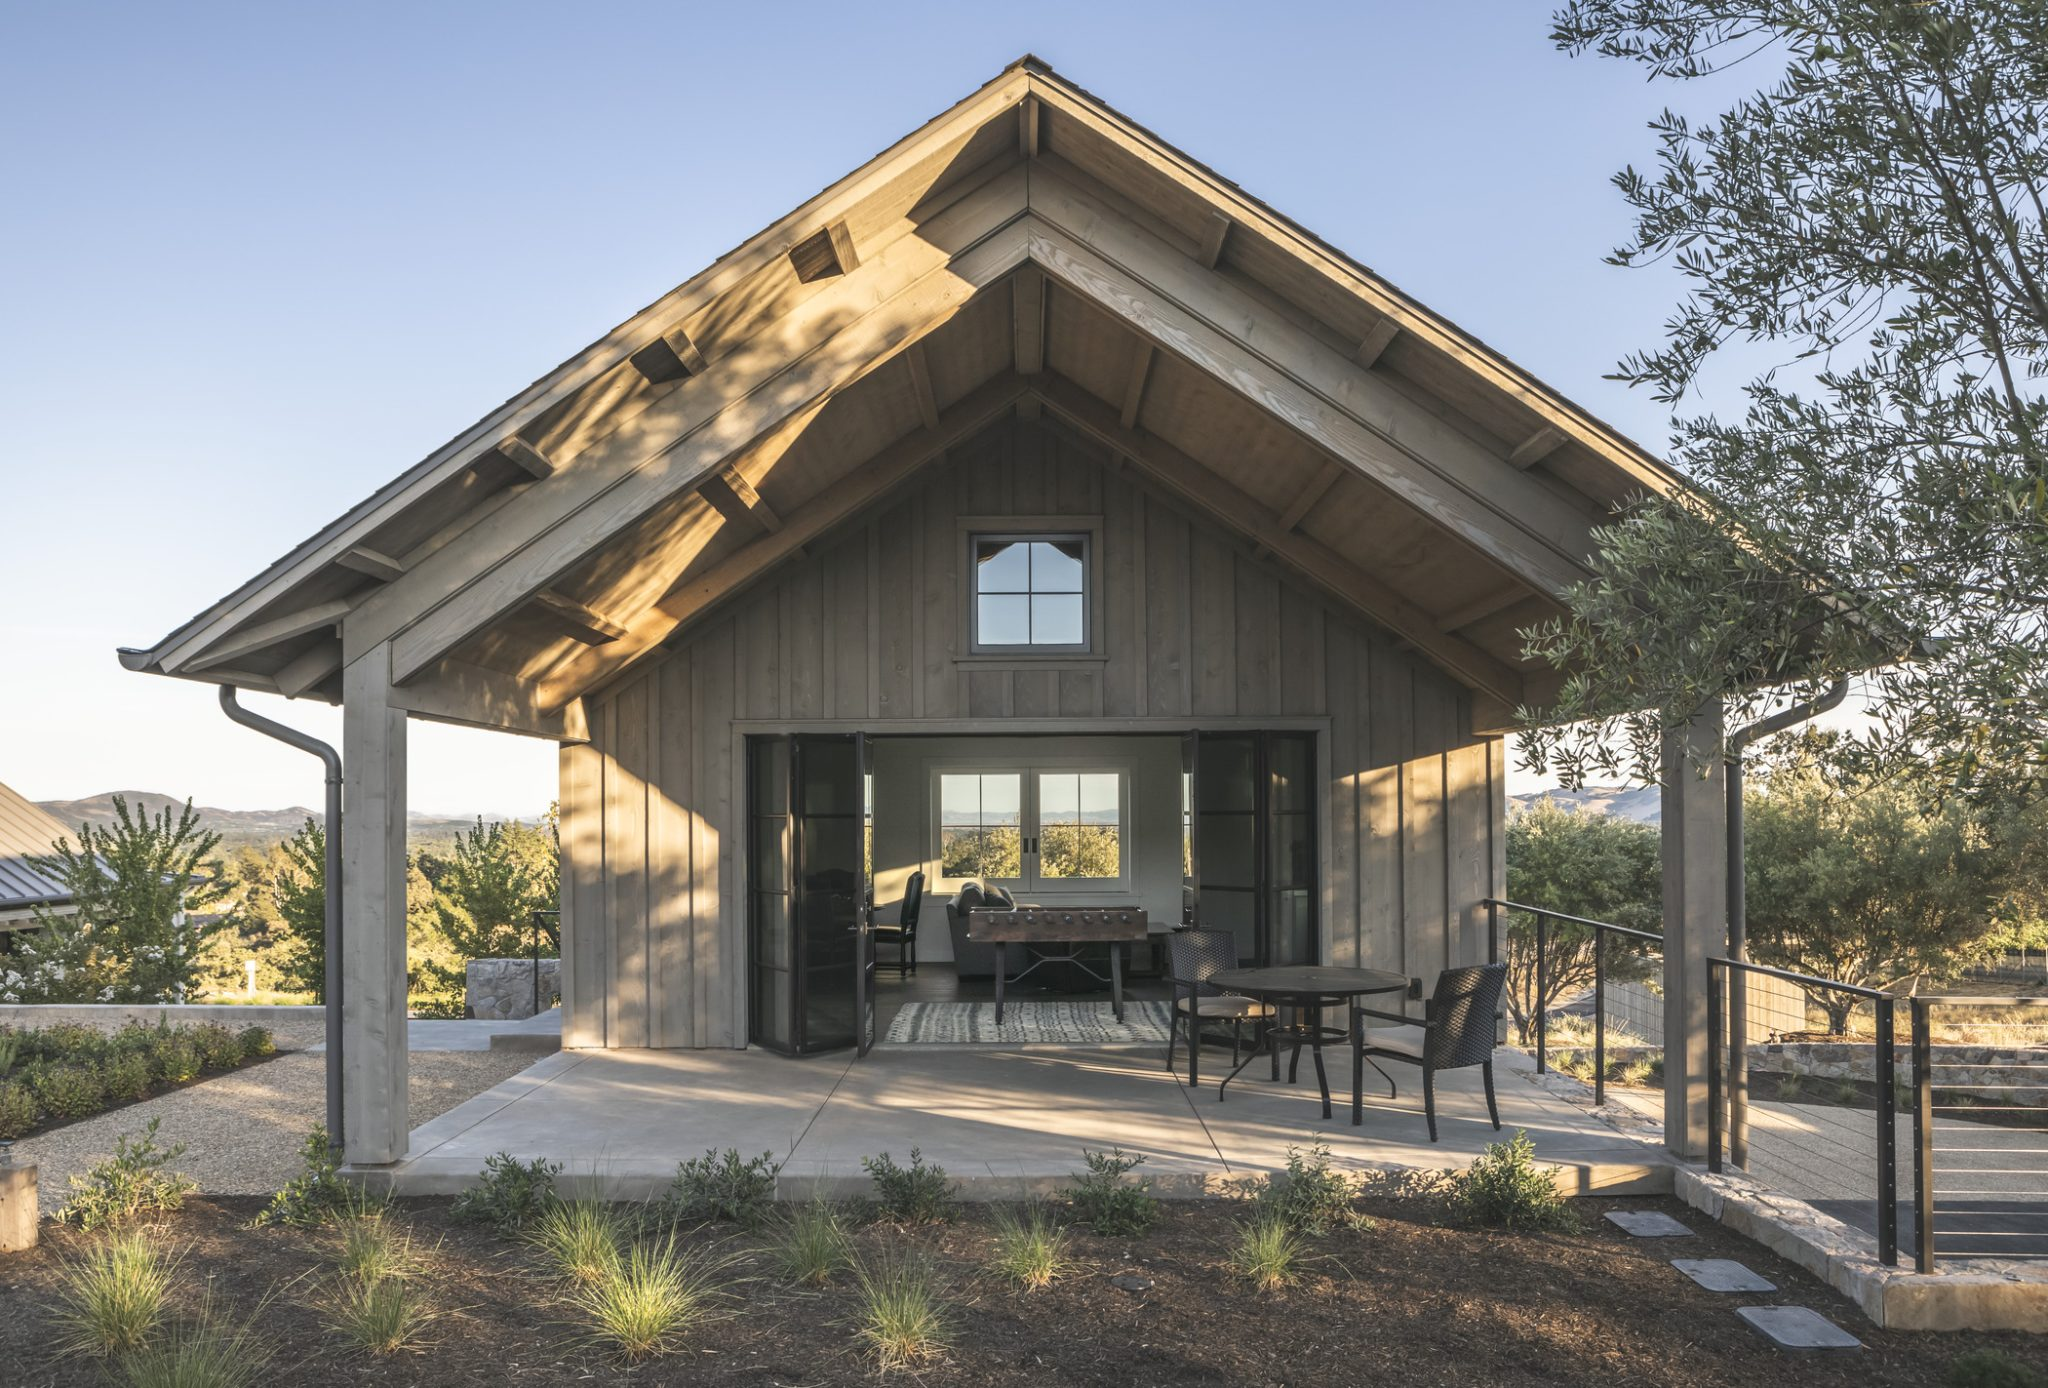 A small, A-frame garage serves as an added lounge space, and includes a pool table and seating area. Stained cedar siding gives the building a rustic appearance.